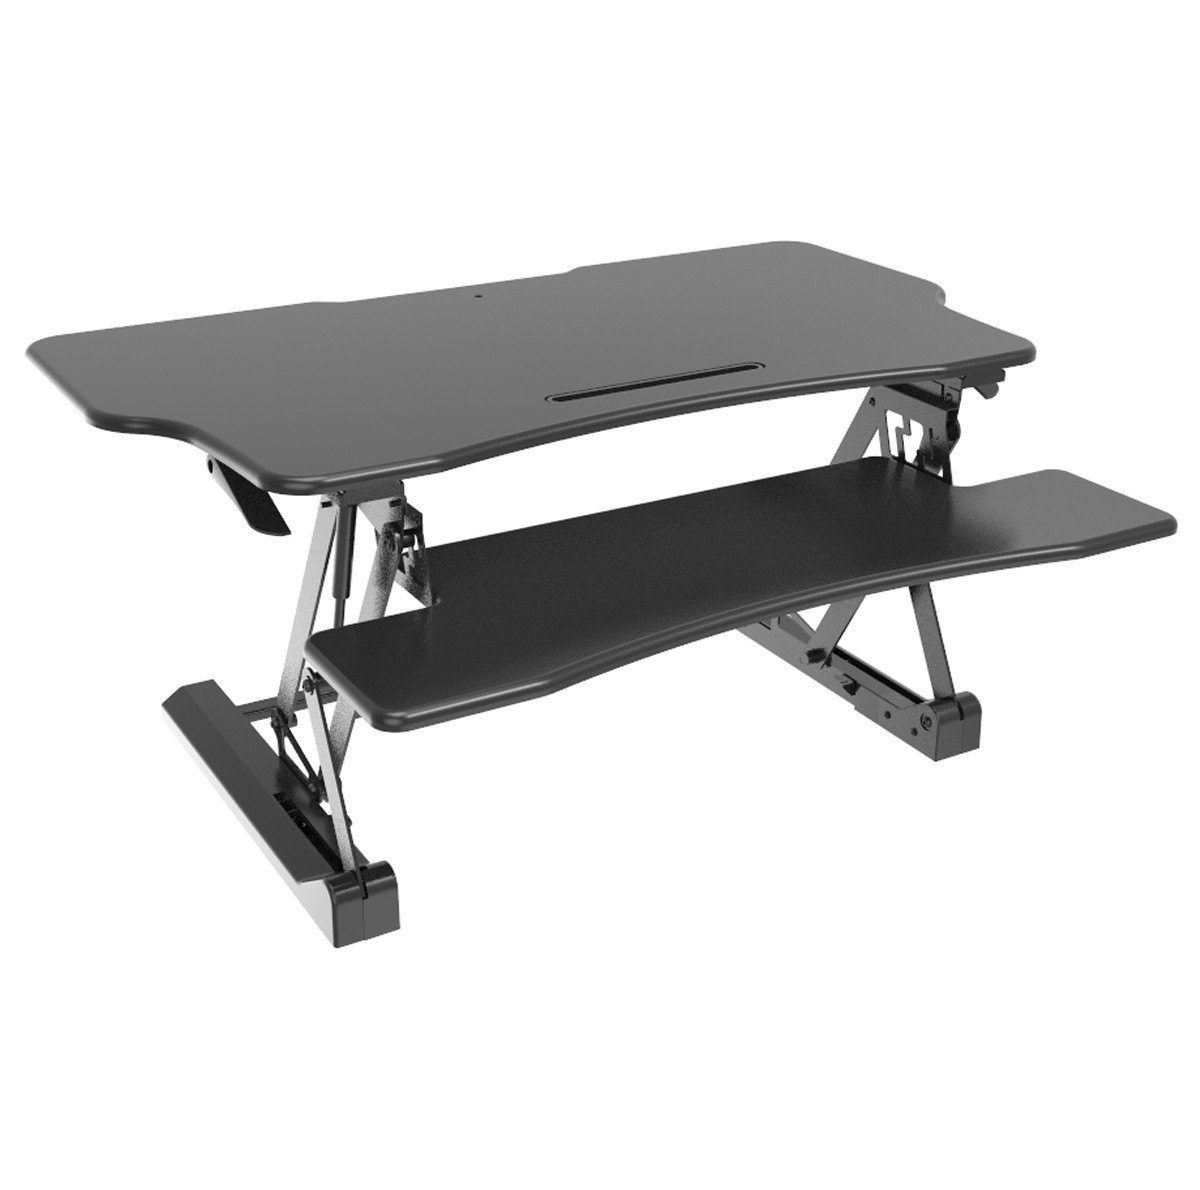 STS-DR42ii 42″ Sit-to-Stand Standing Desk Riser (Black)